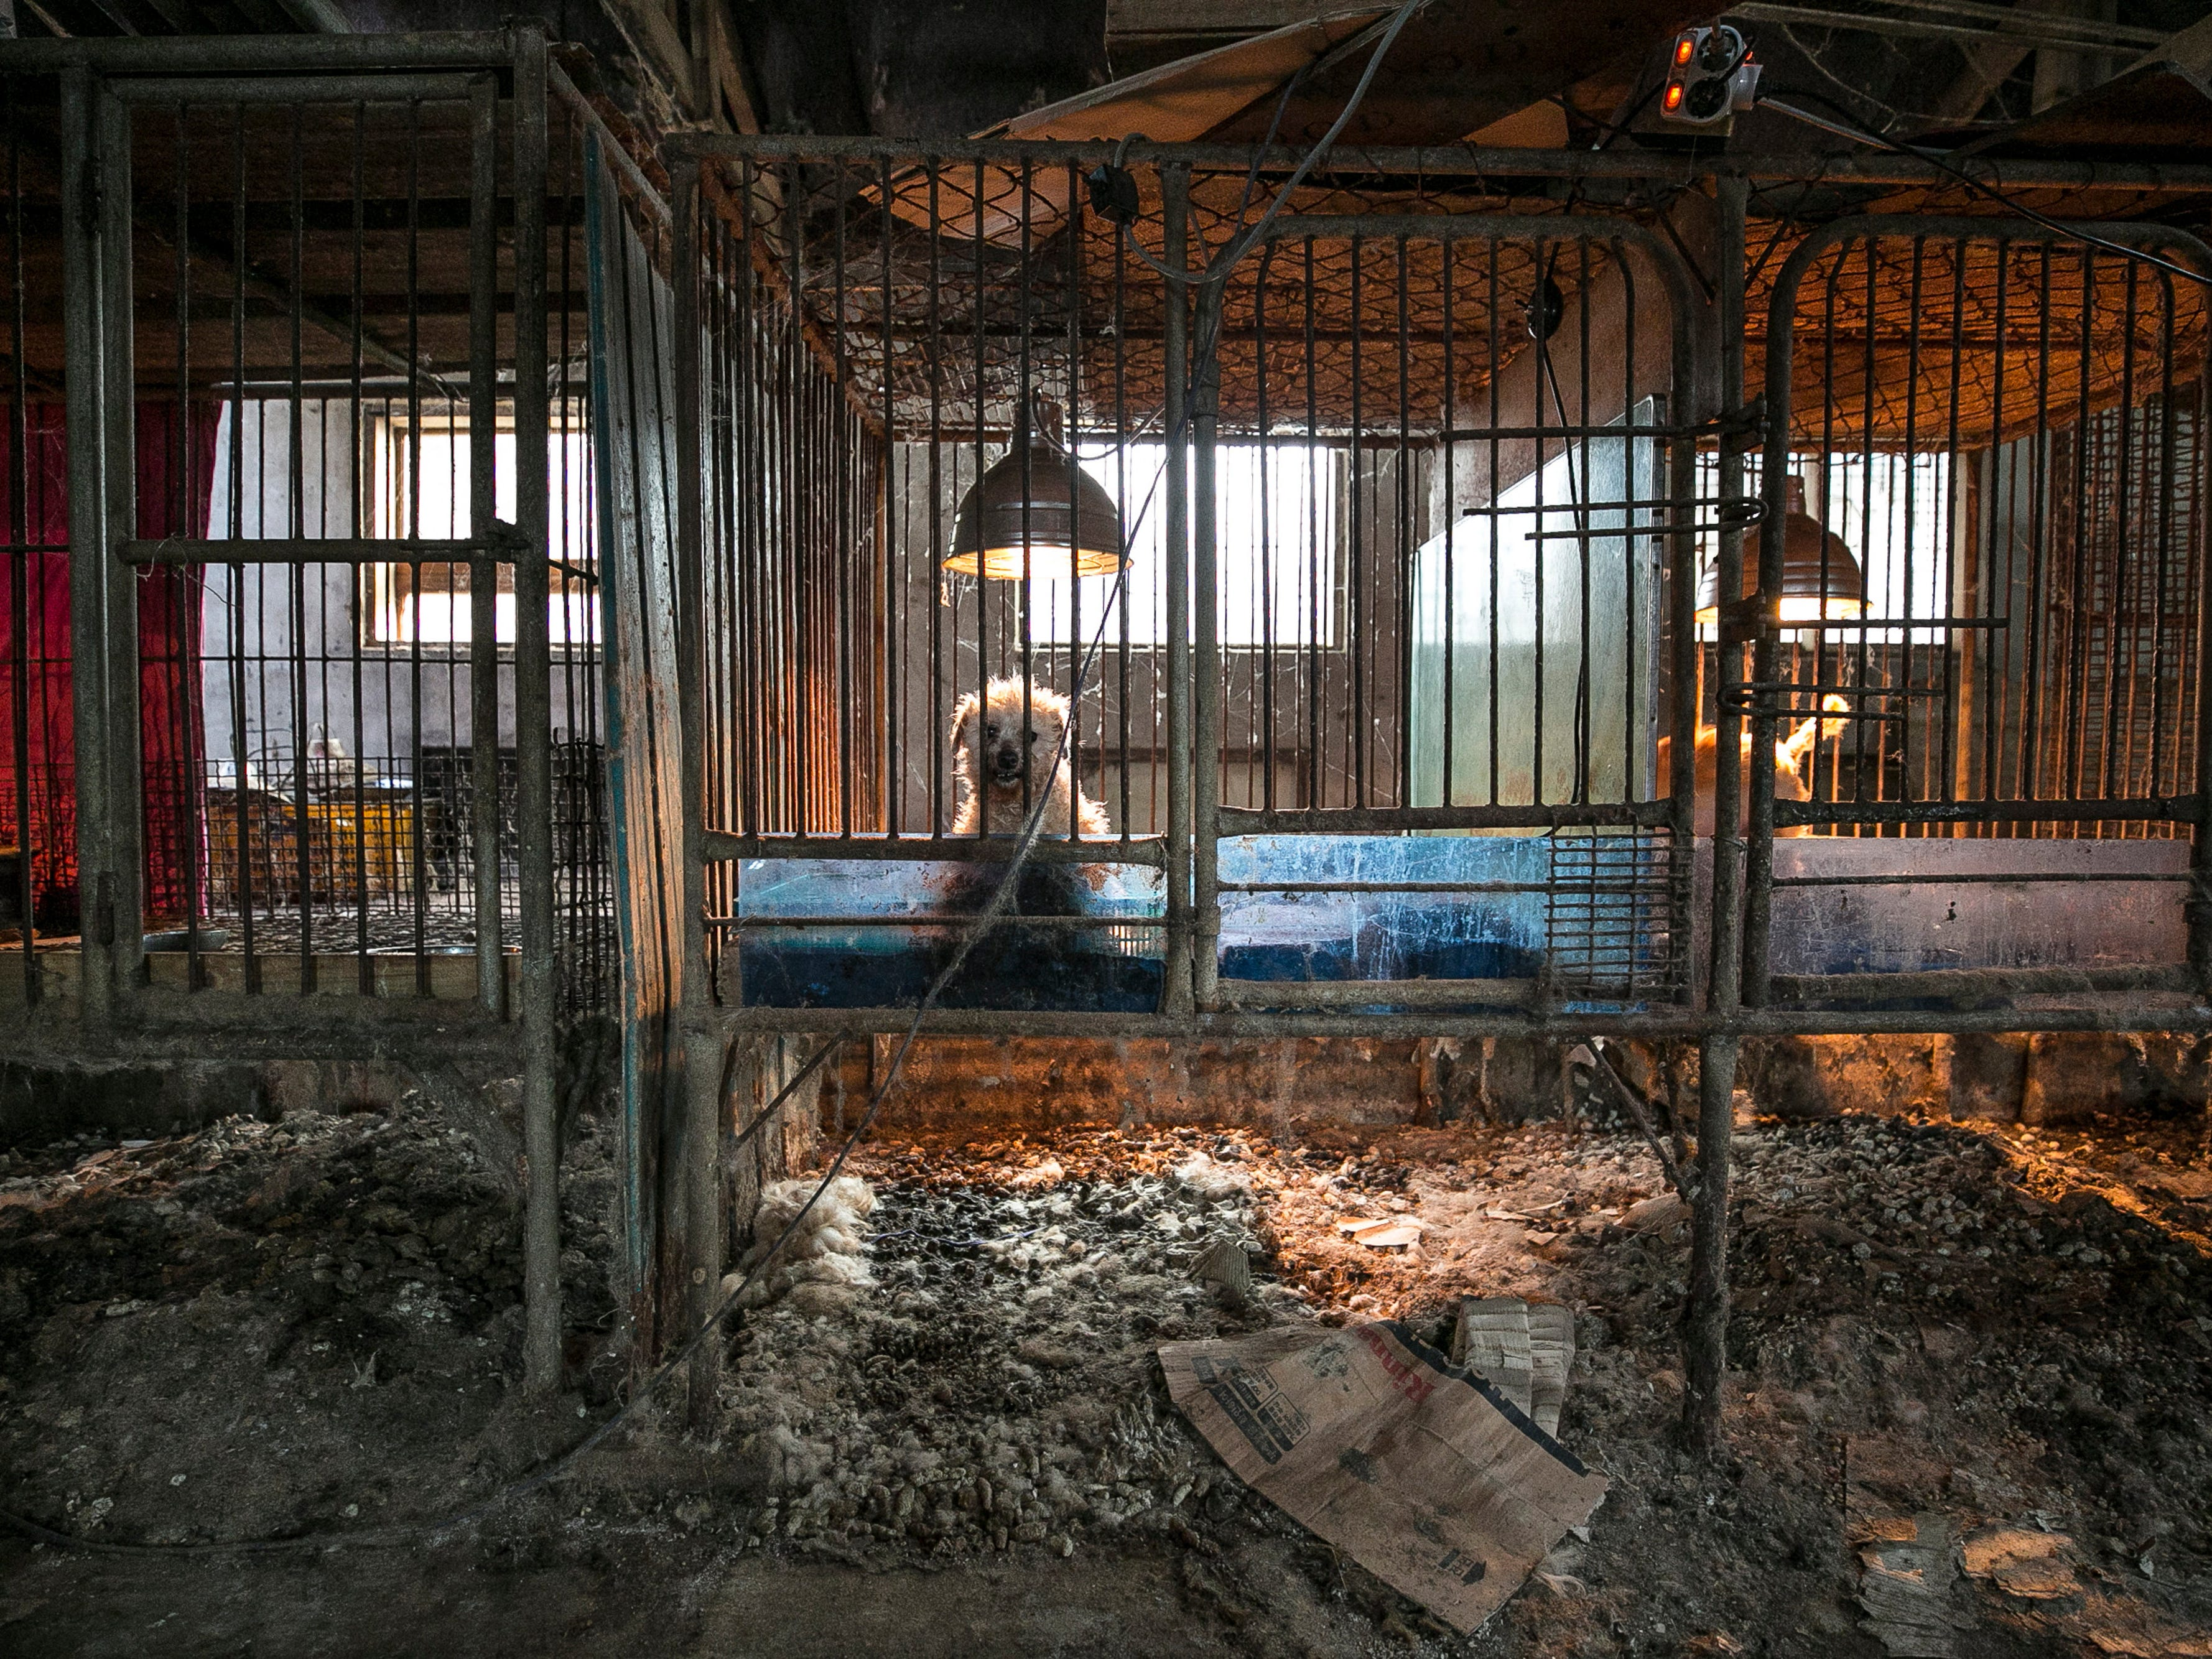 Mother dogs and puppies inside a puppy mill are shown locked in a cage at a dog meat farm in Hongseong-gun, South Korea, on Friday, January 11, 2019. The operation is part of HSIs efforts to fight the dog meat trade throughout Asia. In South Korea, the campaign includes working to raise awareness among Koreans about the plight of meat dogs being no different from the animals more and more of them are keeping as pets.